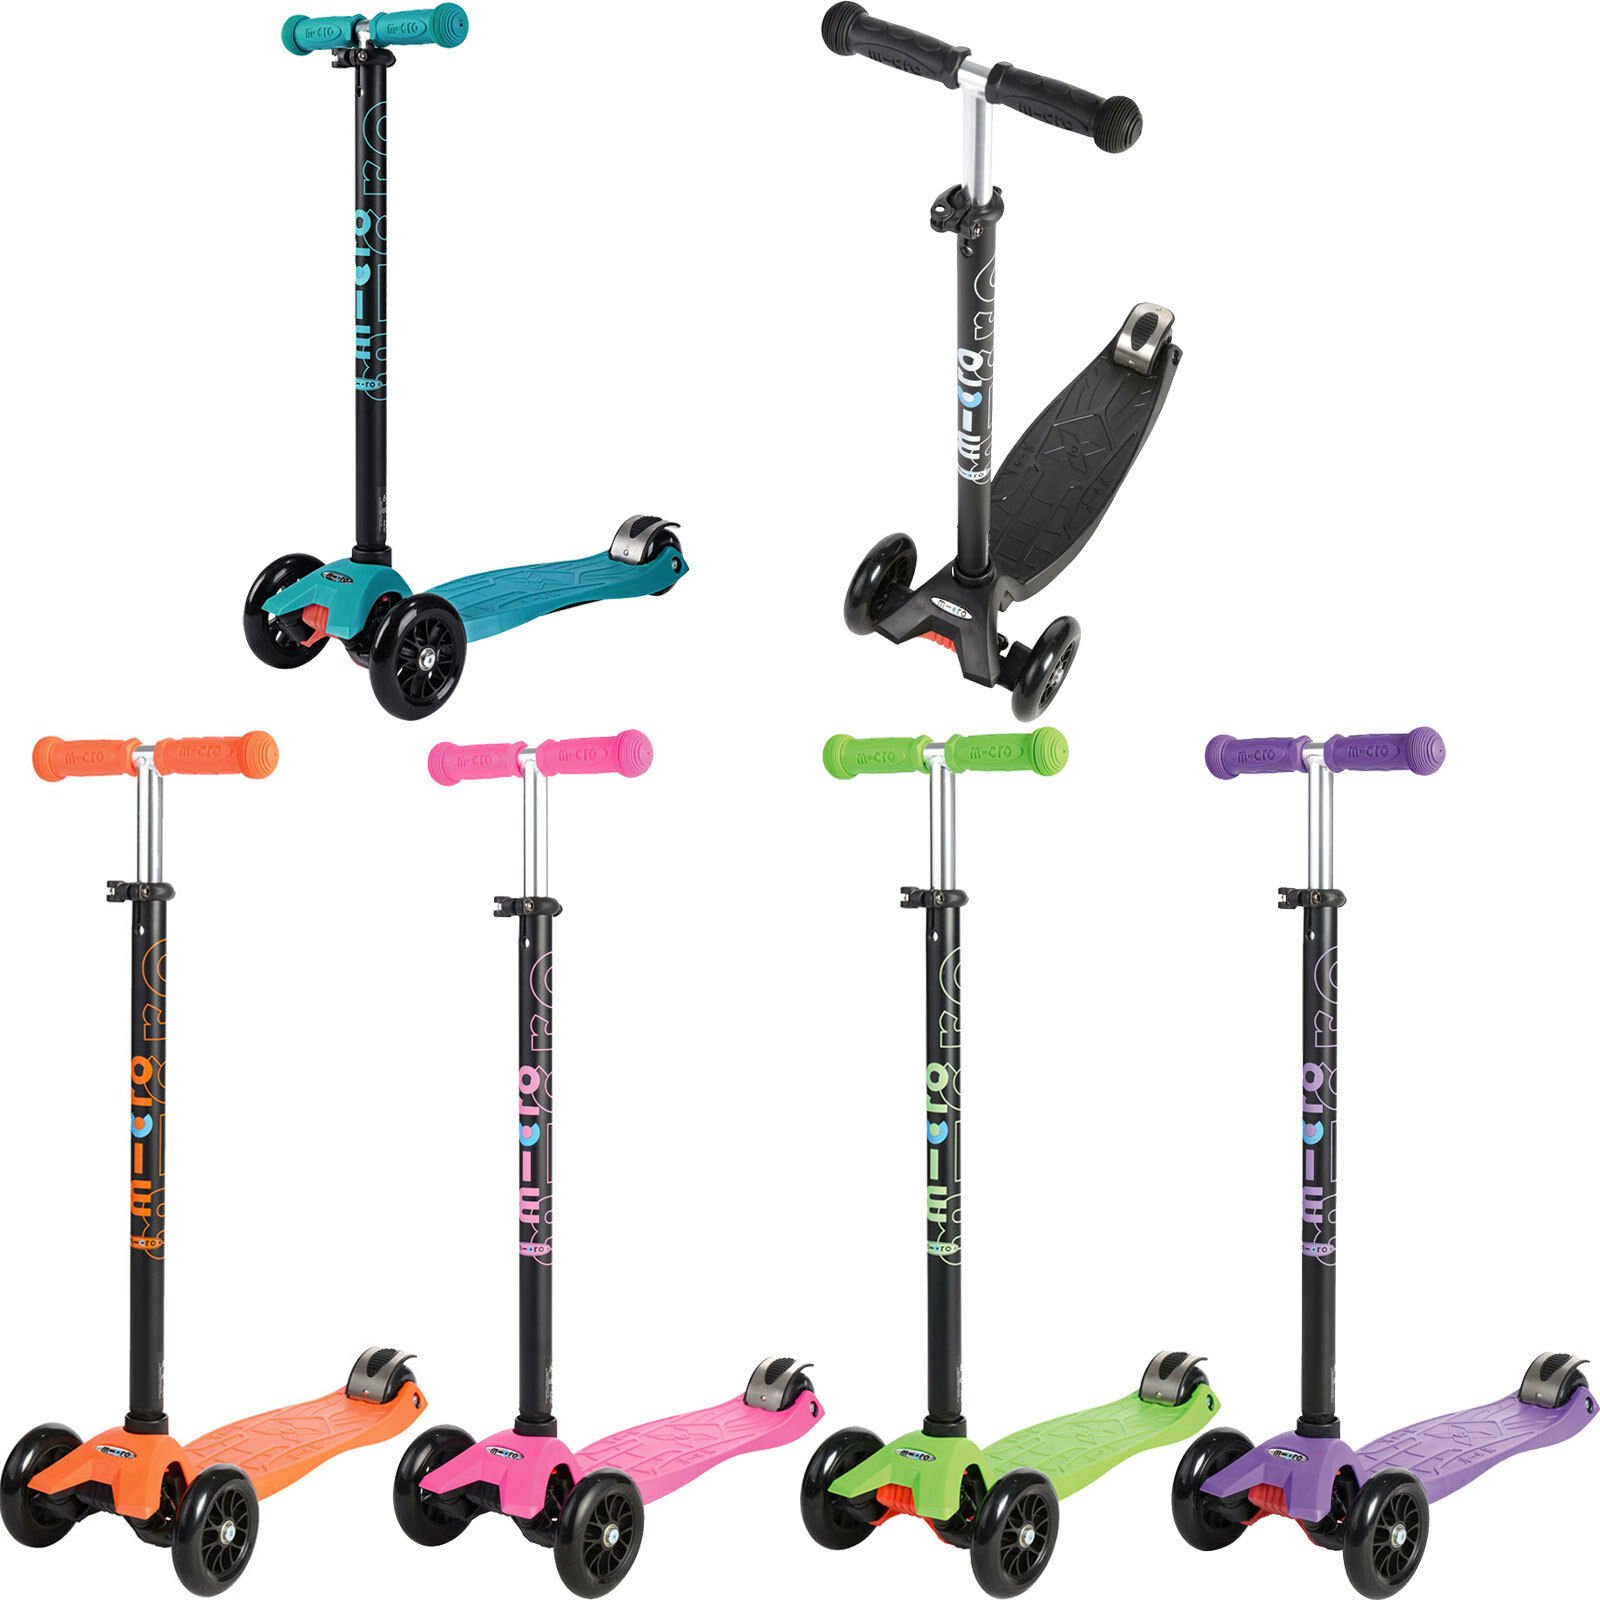 Micro Maxi Micro T Scooter Kinder-Cruiser Kids Scooter Pedal